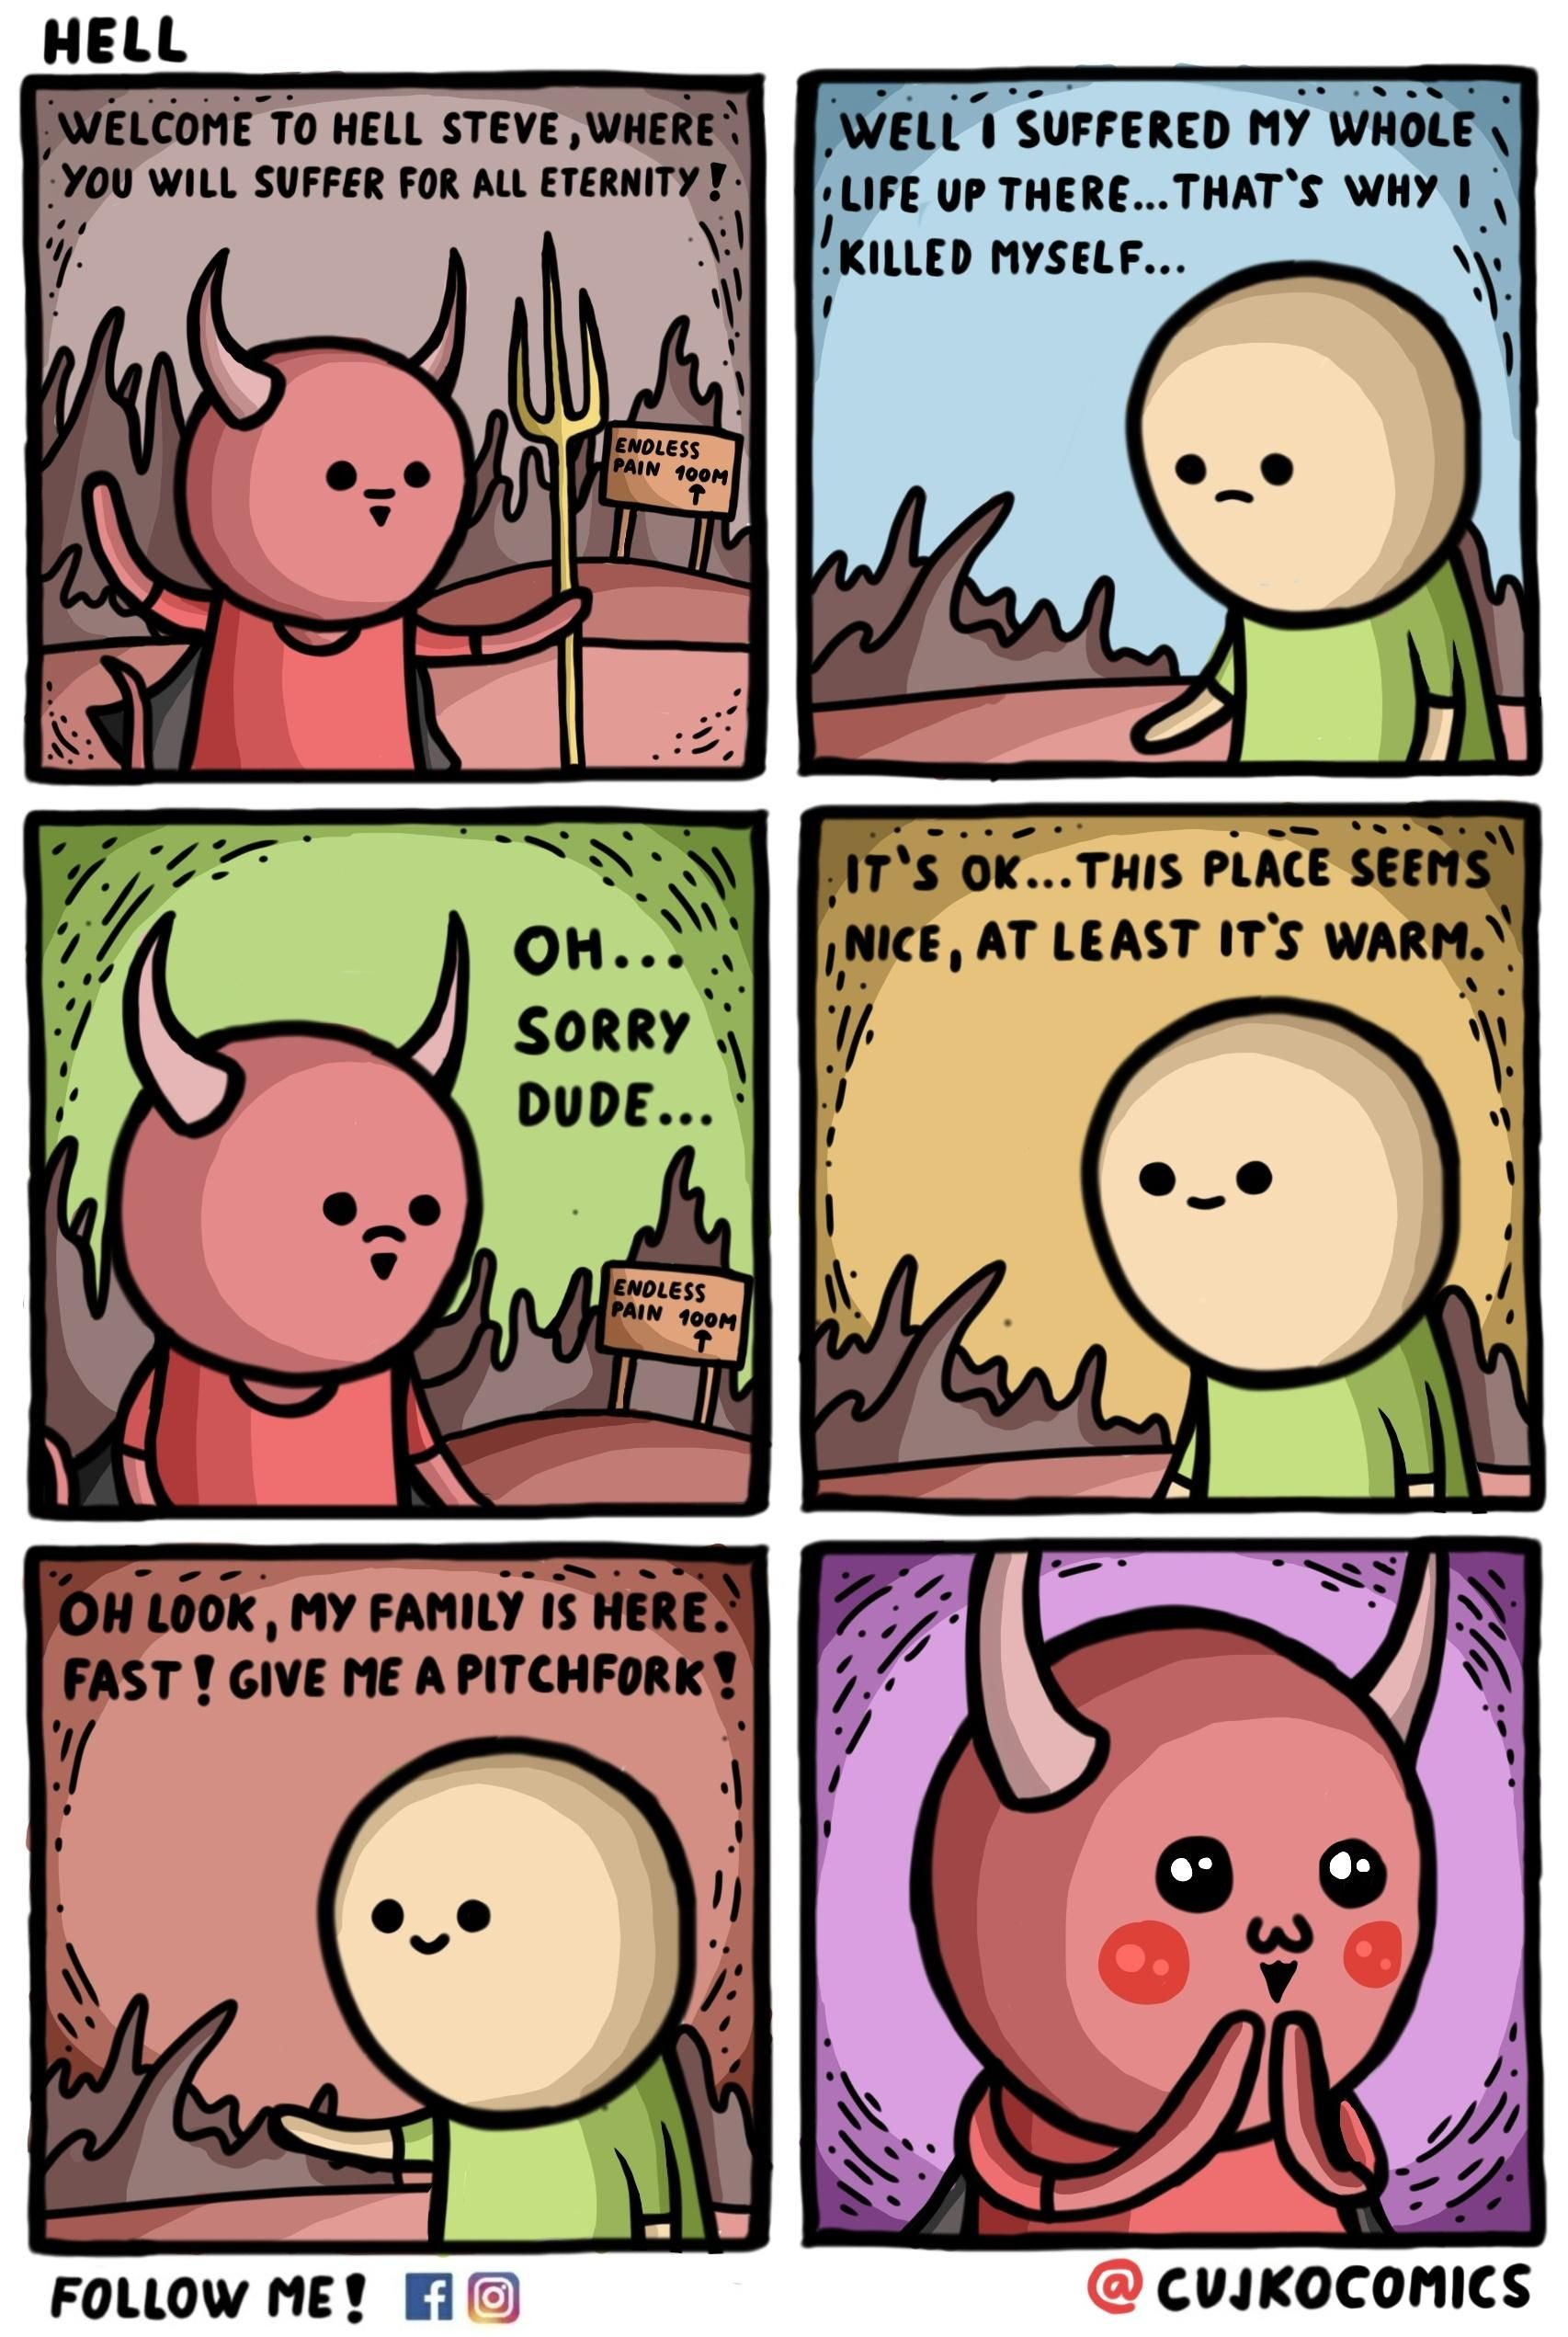 reddit: the front page of the internet | Comics | Funny